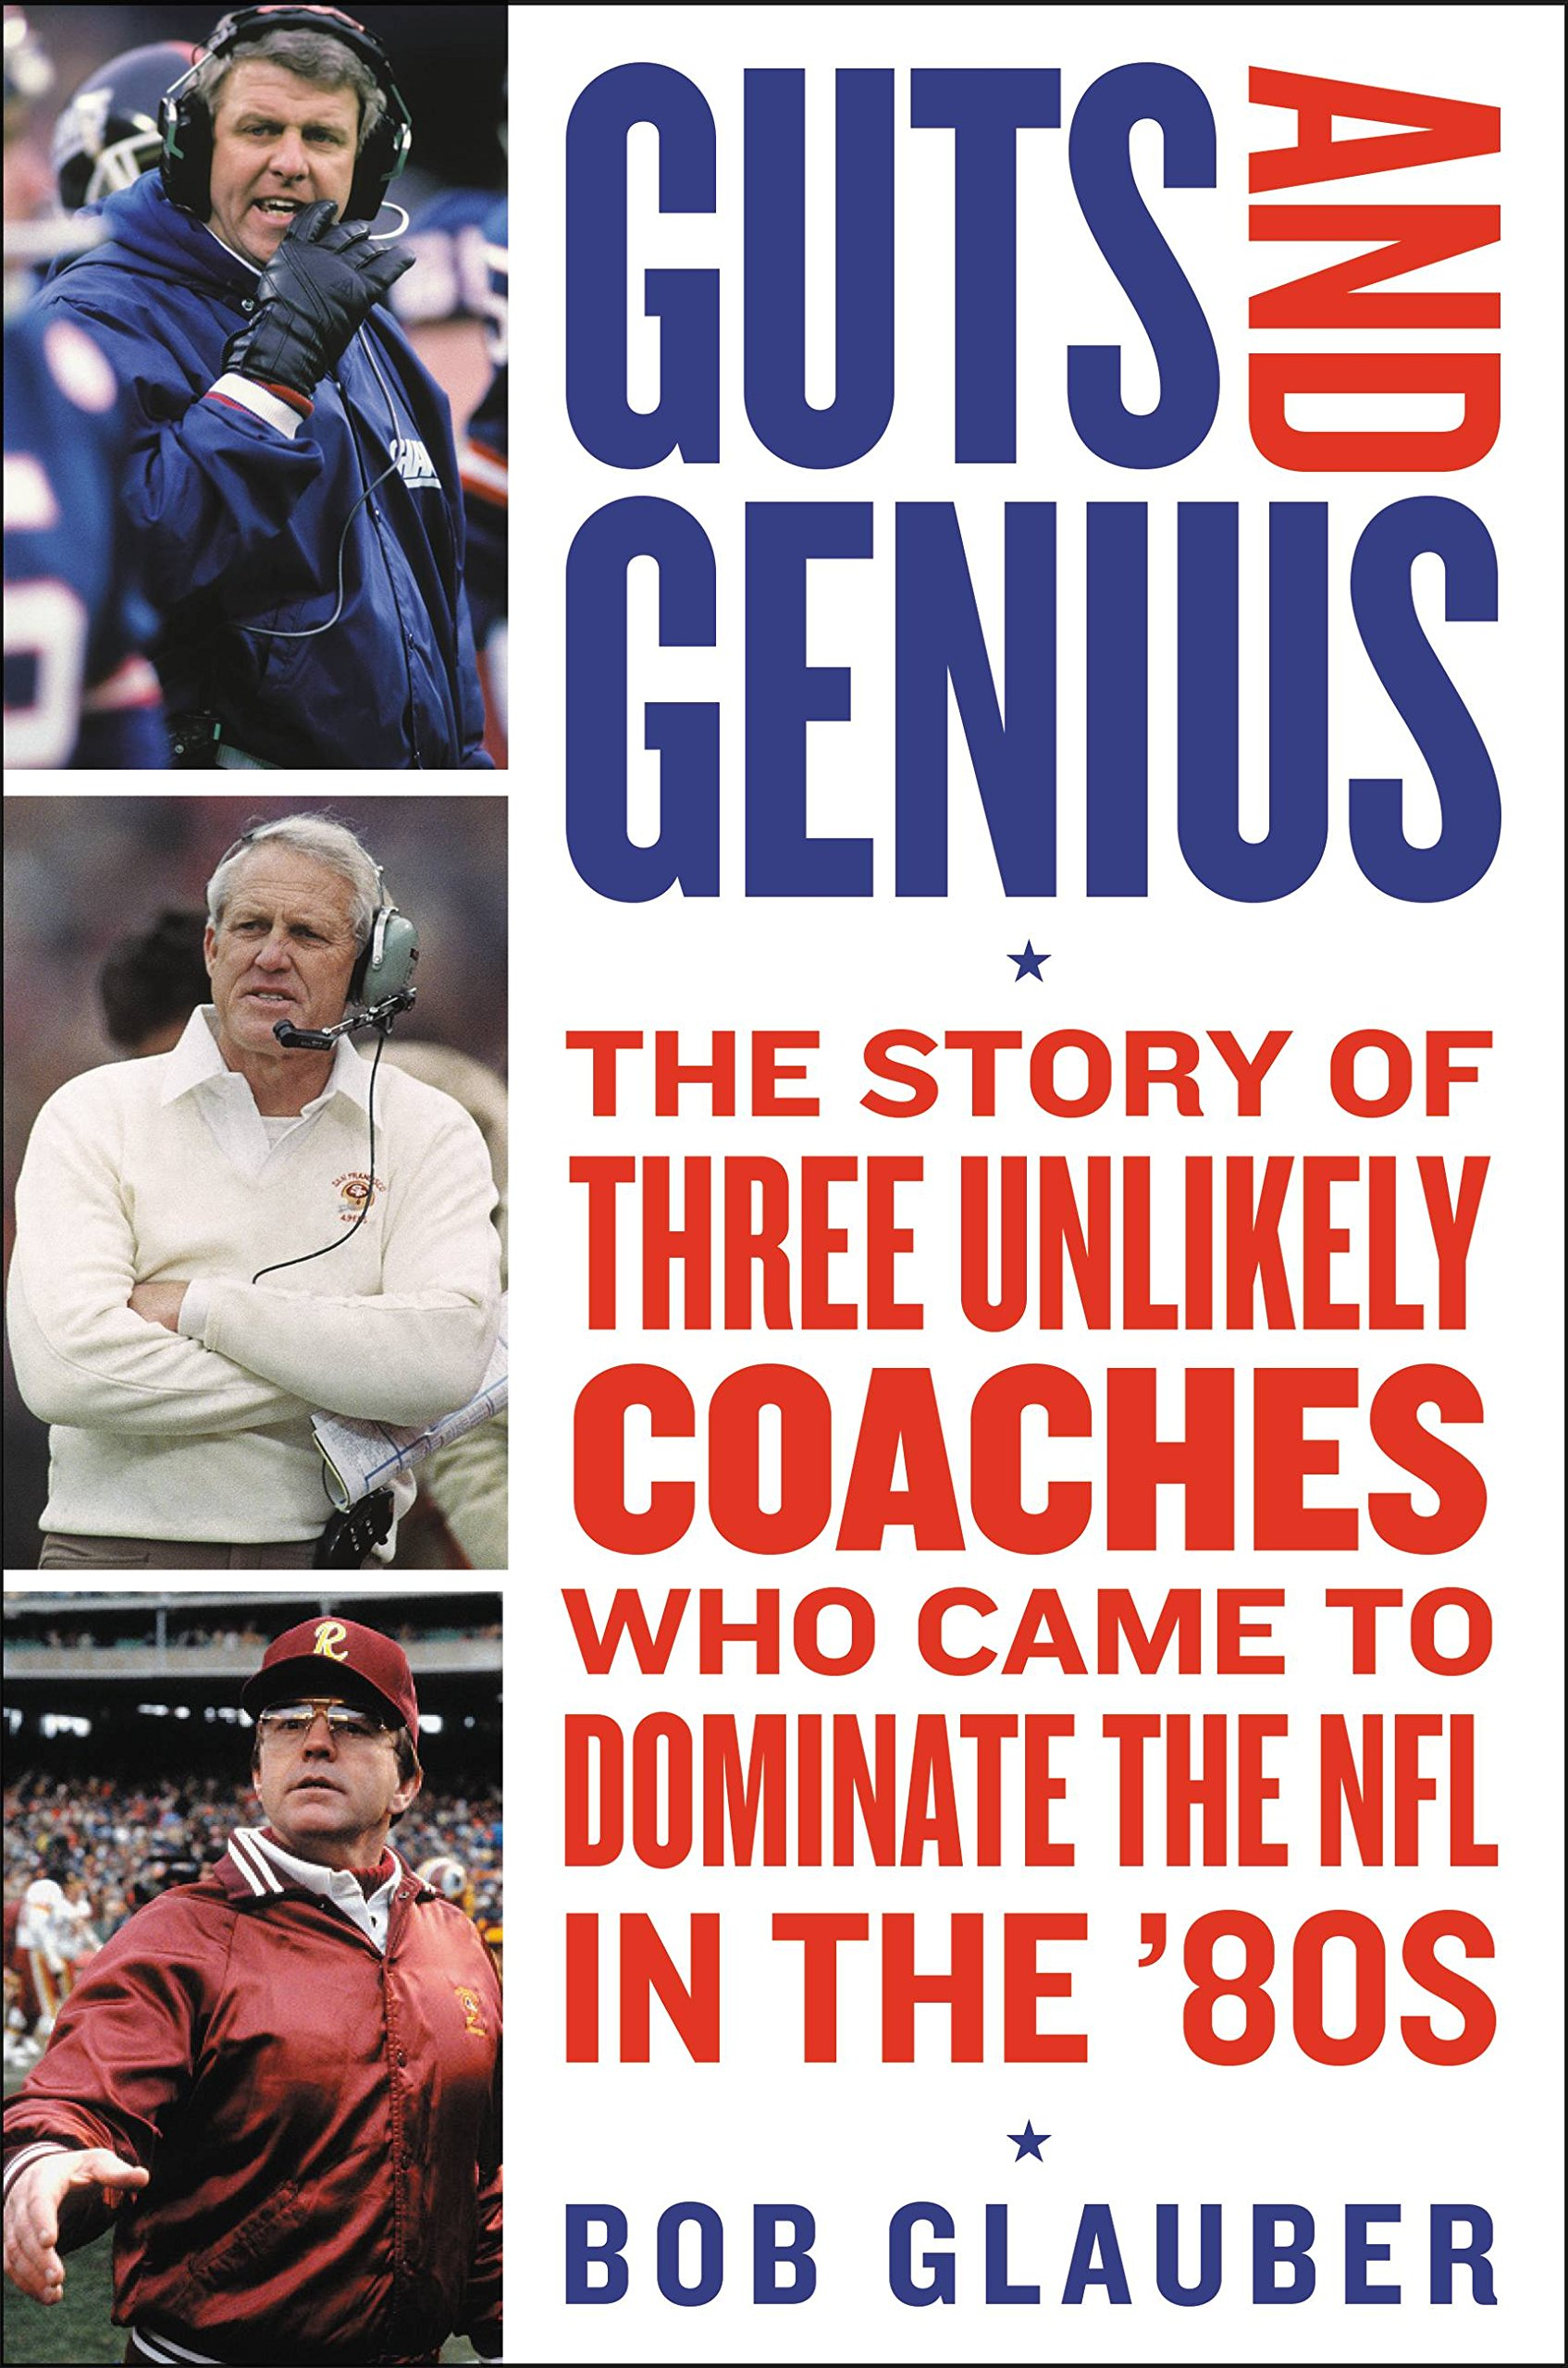 Image OfGuts And Genius: The Story Of Three Unlikely Coaches Who Came To Dominate The NFL In The '80s (English Edition)